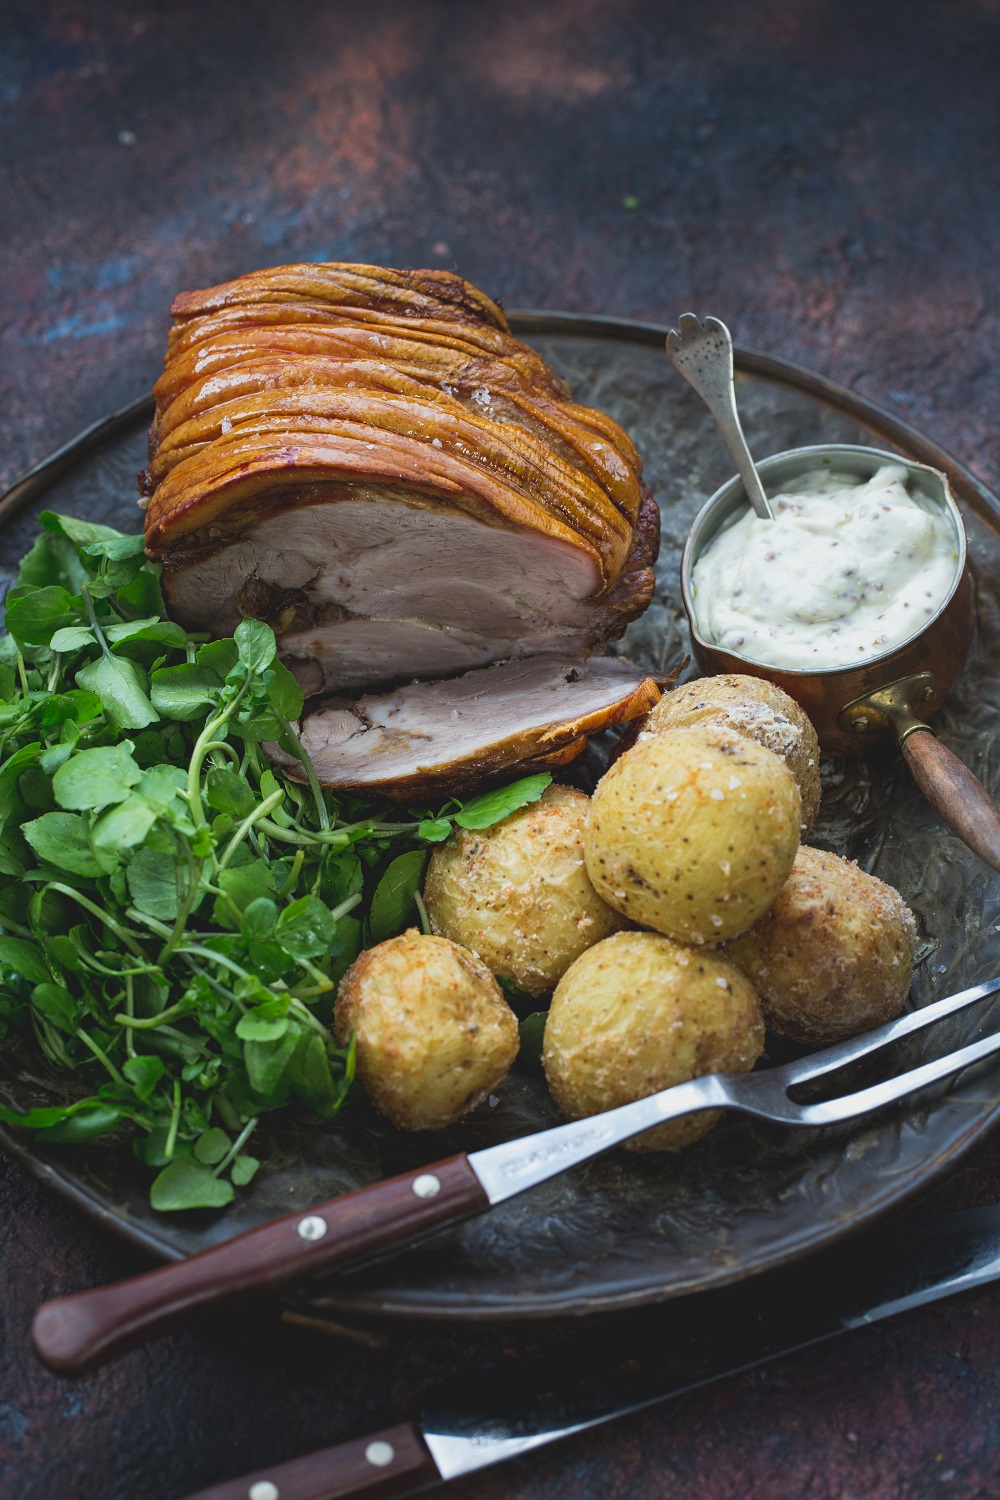 Slow Cooked Pork Shoulder With Salt-baked Potatoes And Watercress